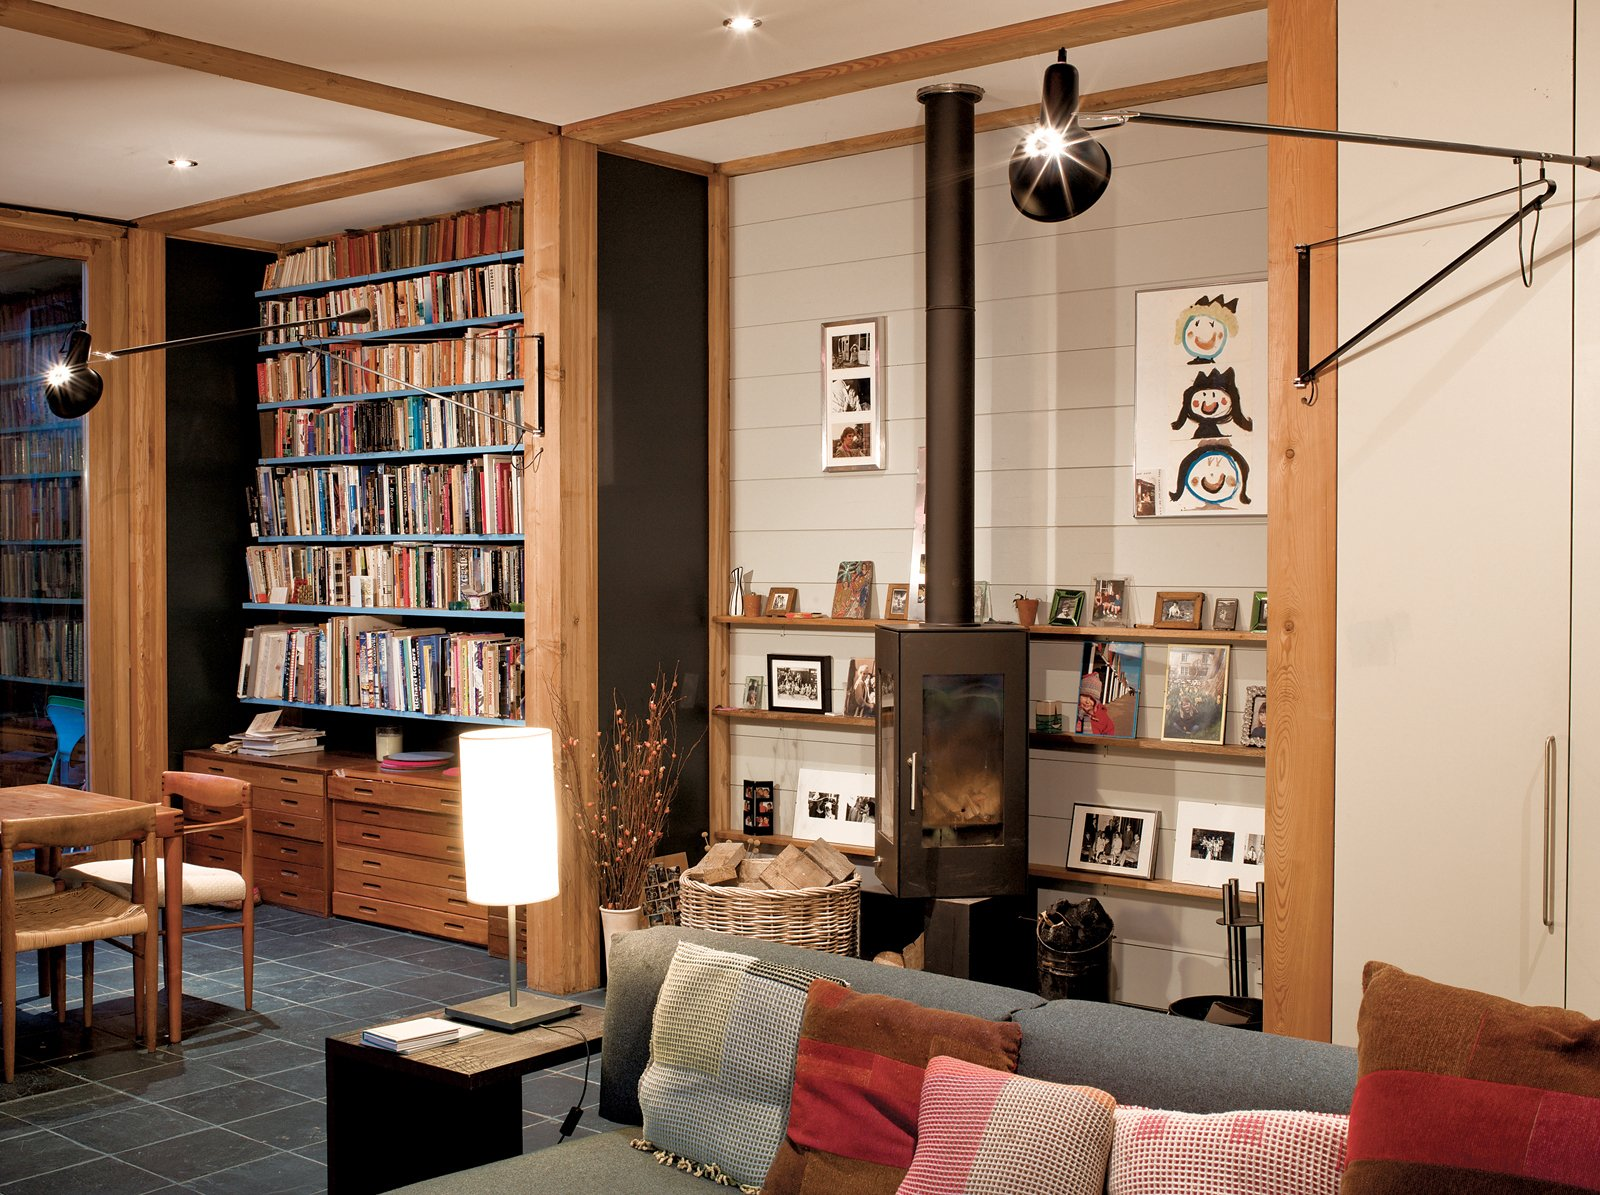 The main living area on the ground floor has plenty of storage, bookcases, and a Danish wood-burning stove, which pivots to throw heat and light in different directions.  Modern Wood-Burning Stoves by Megan Hamaker